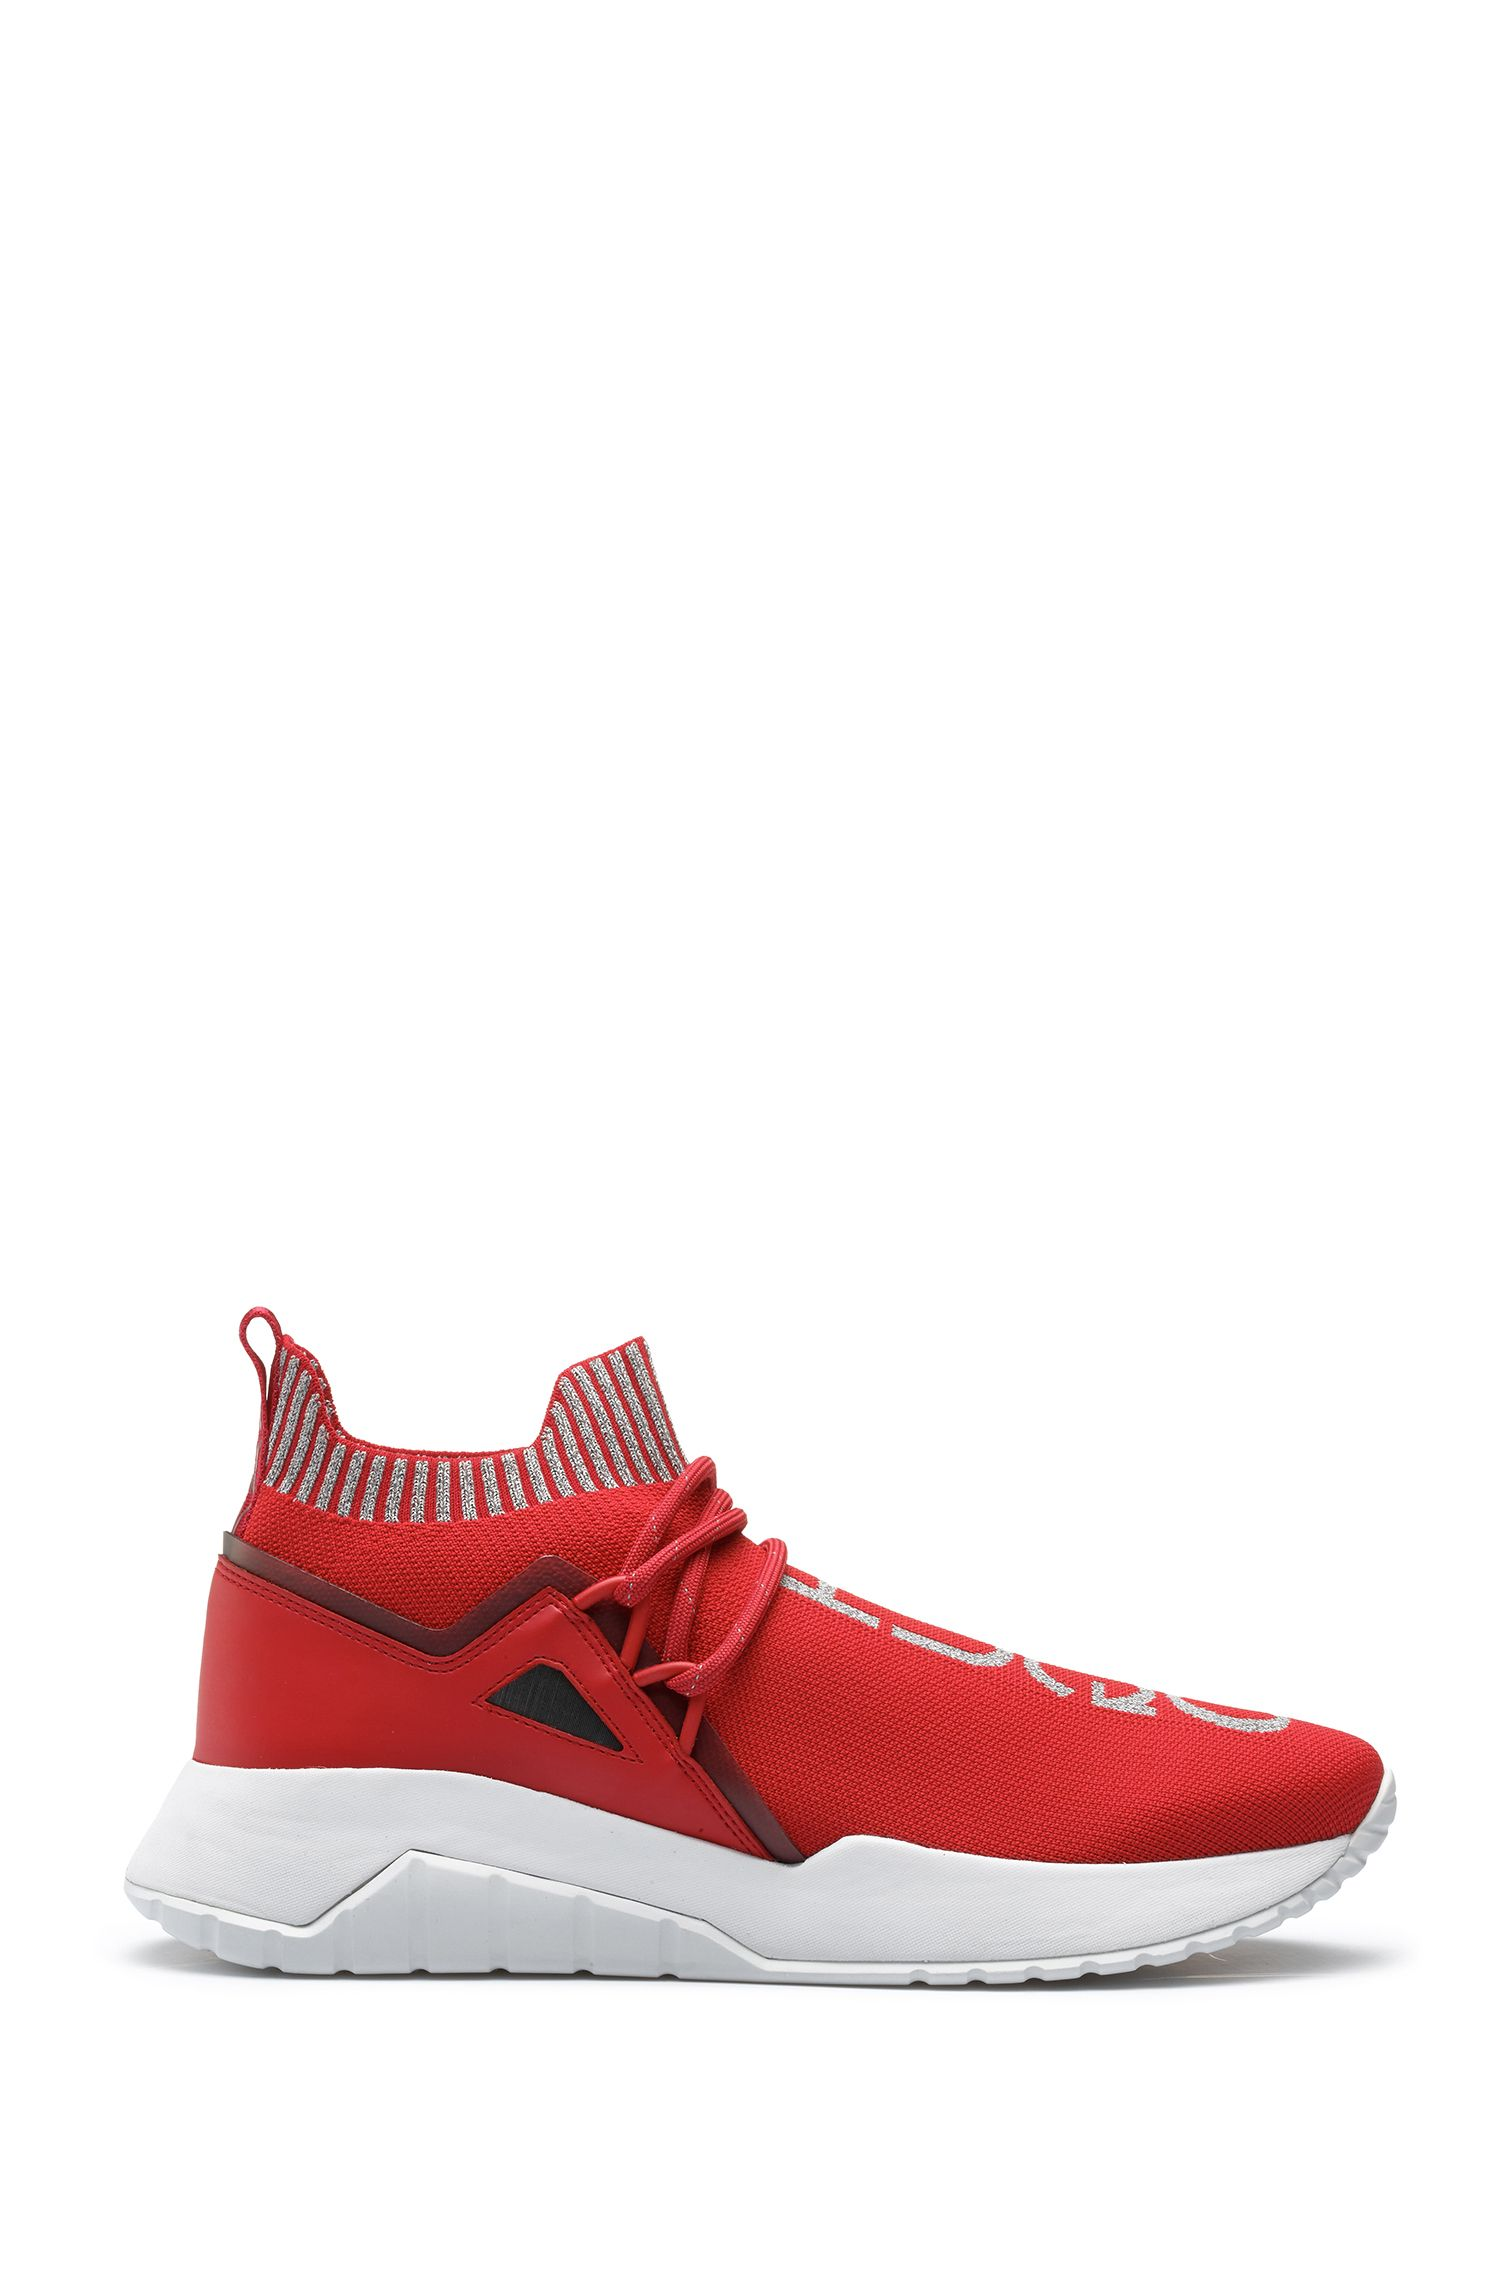 Reflective-logo sneakers with knitted sock, Red